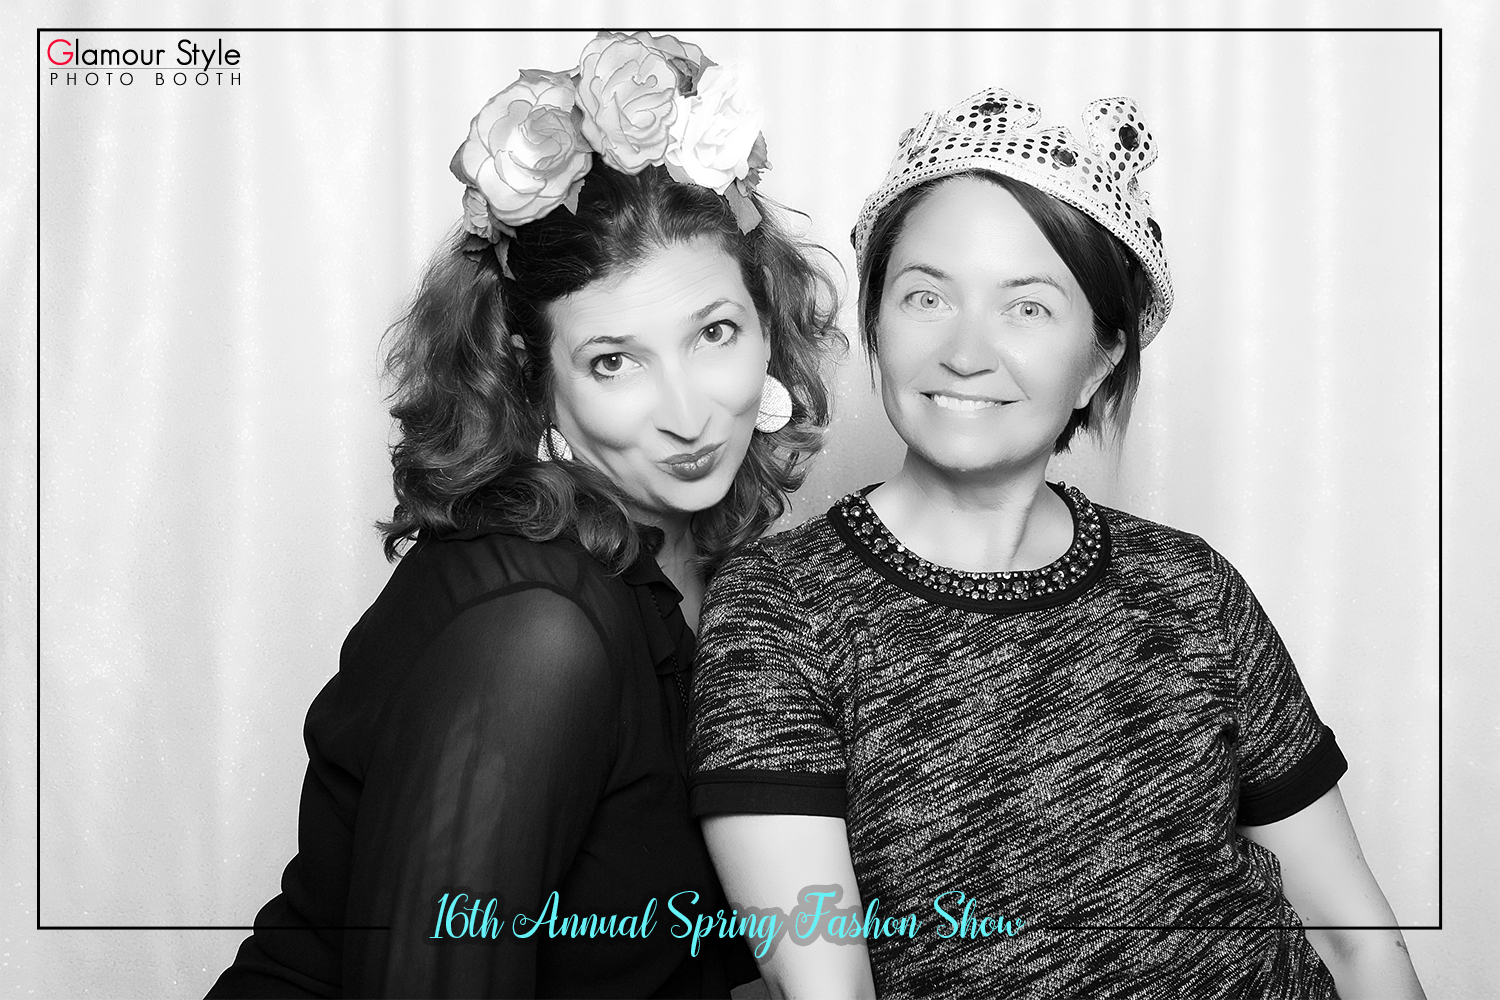 Ccsf Fashion Show Glamour Style Photo Booth